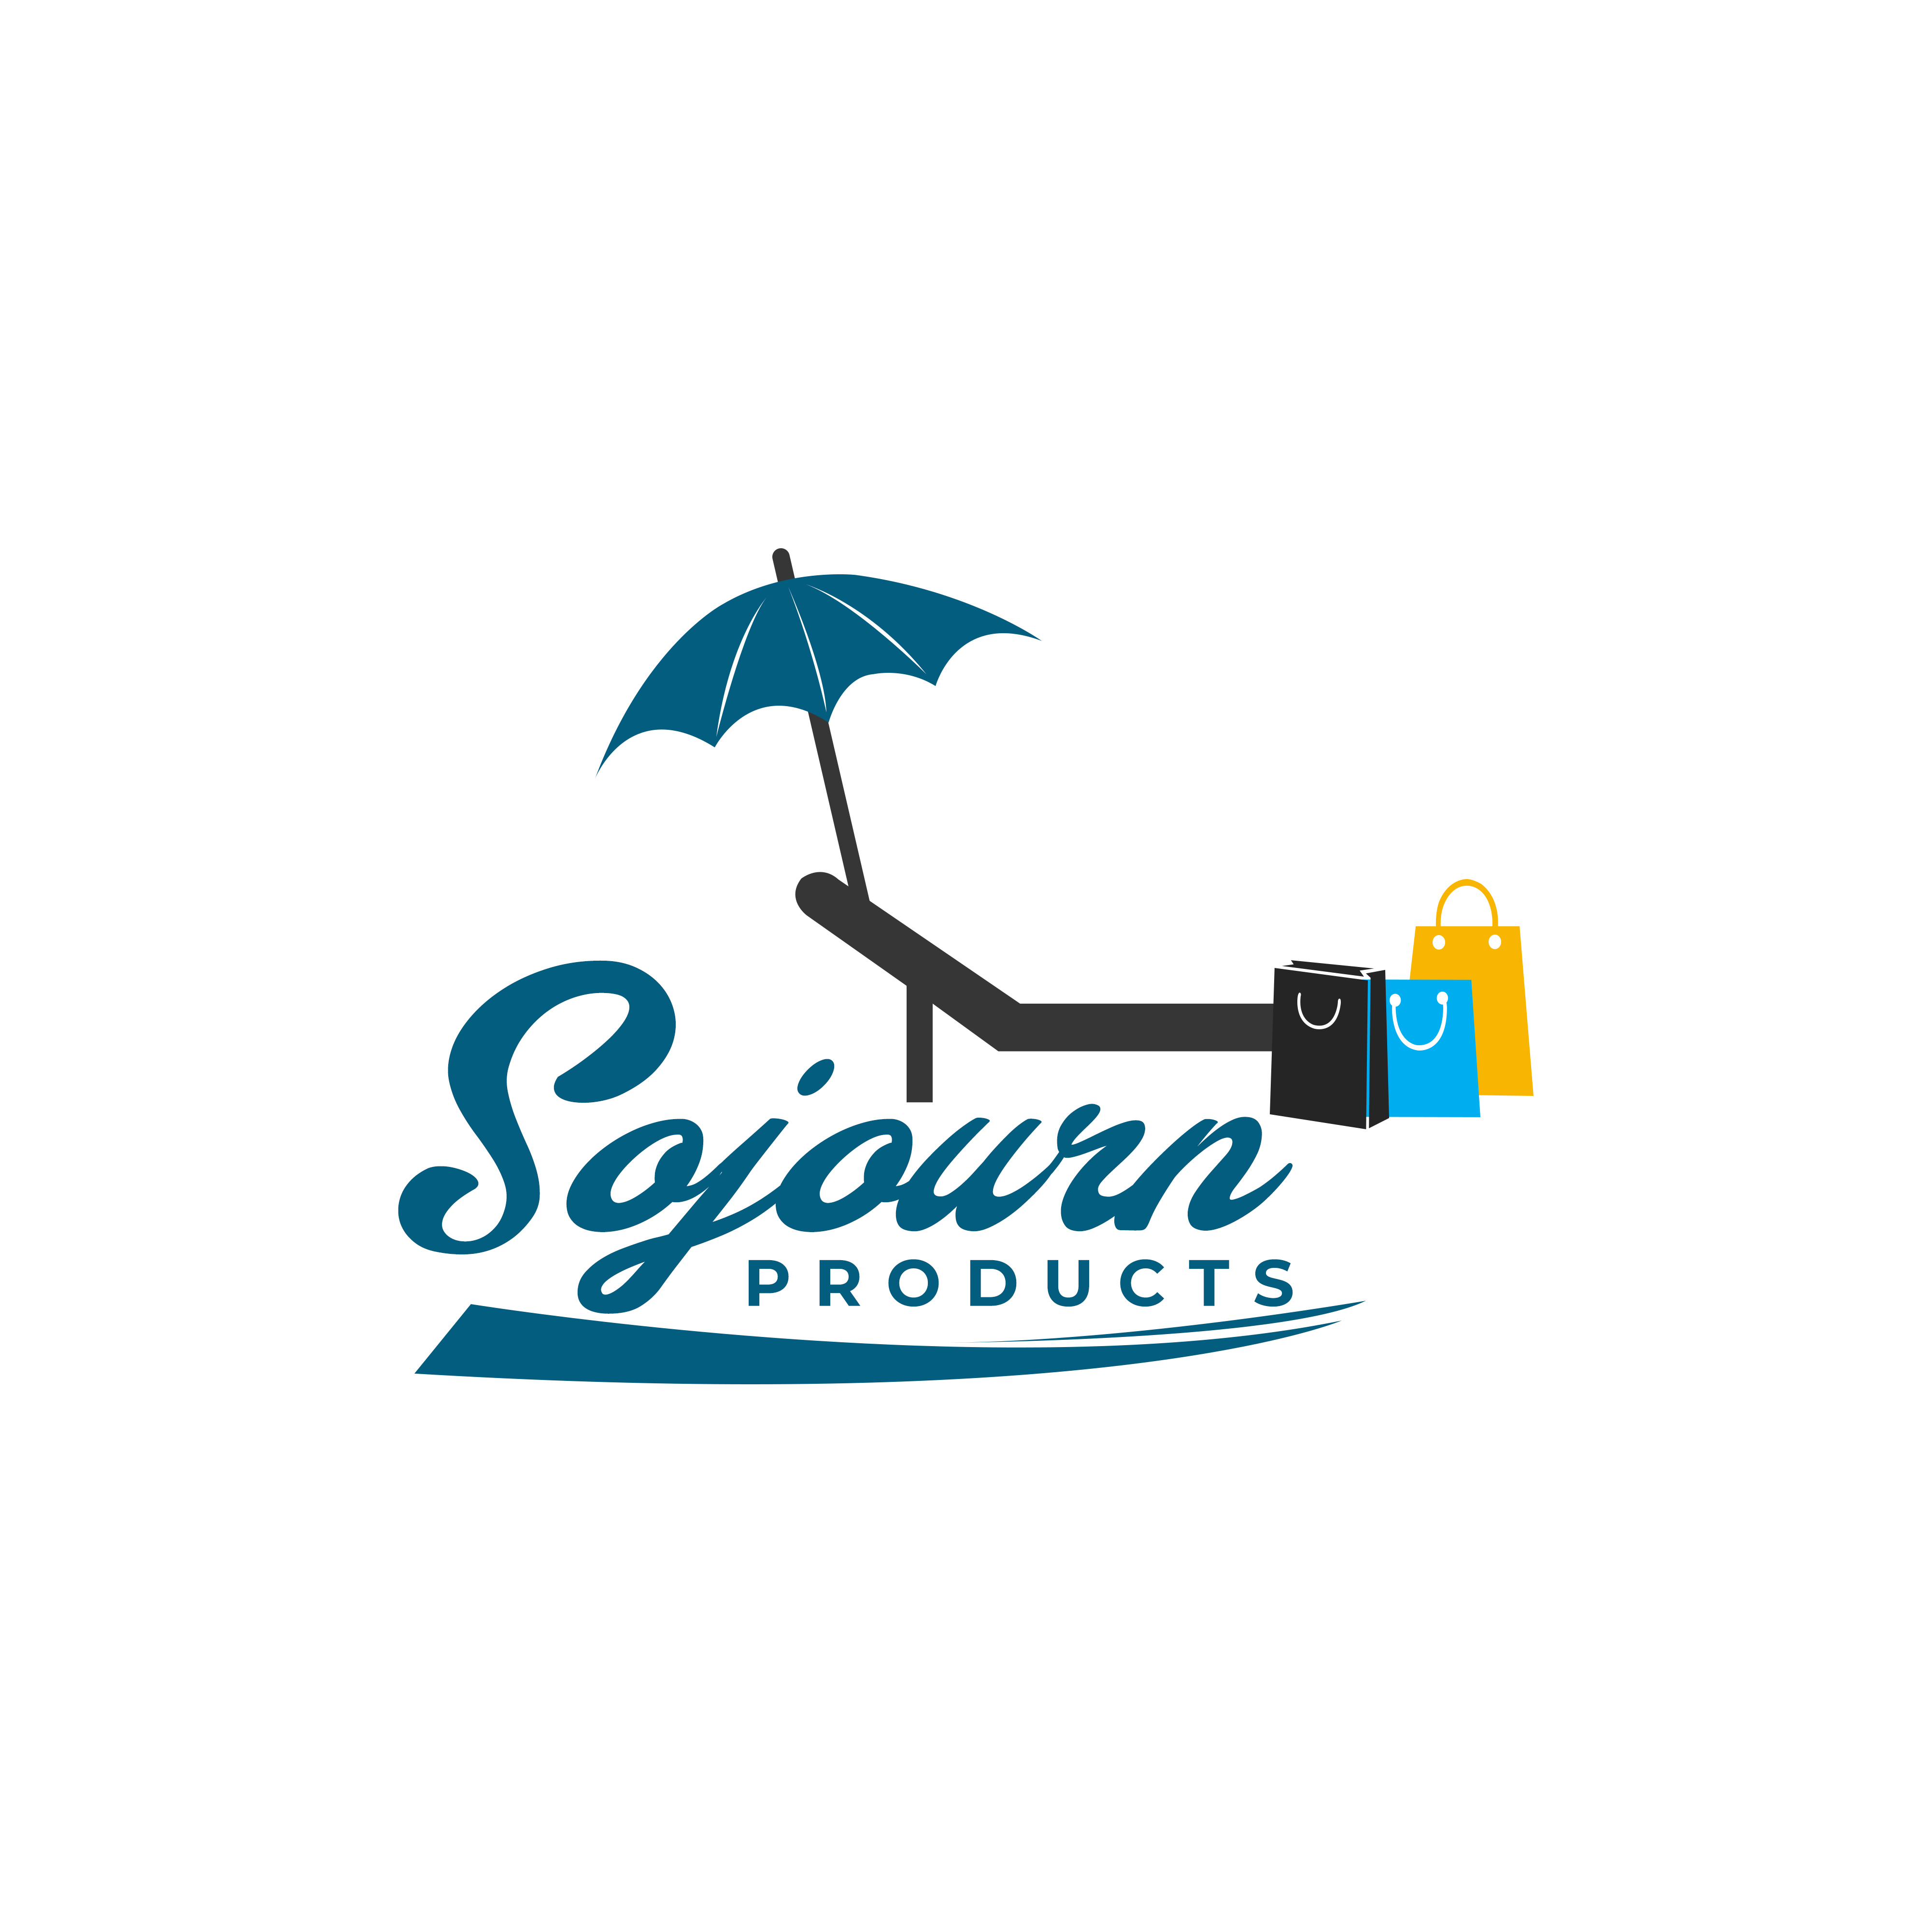 Sojourn Products LLC